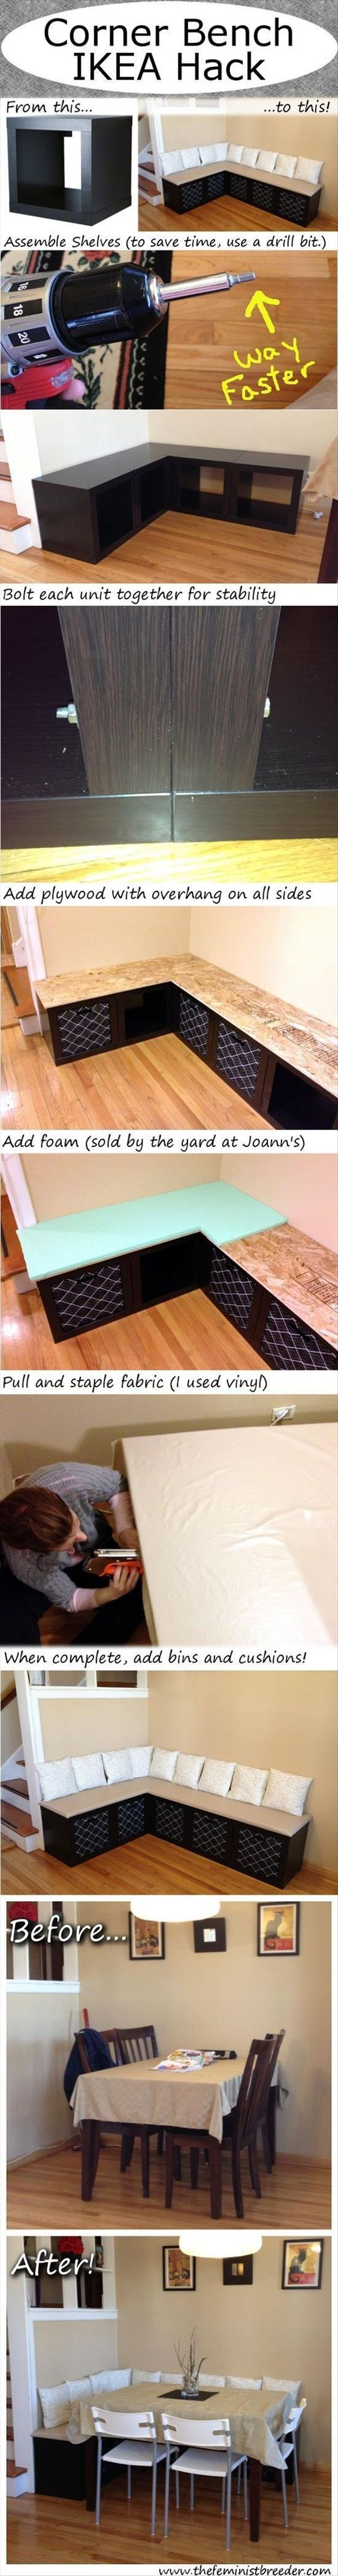 Dump A Day Fun Do It Yourself Craft Ideas - 32 Pics: